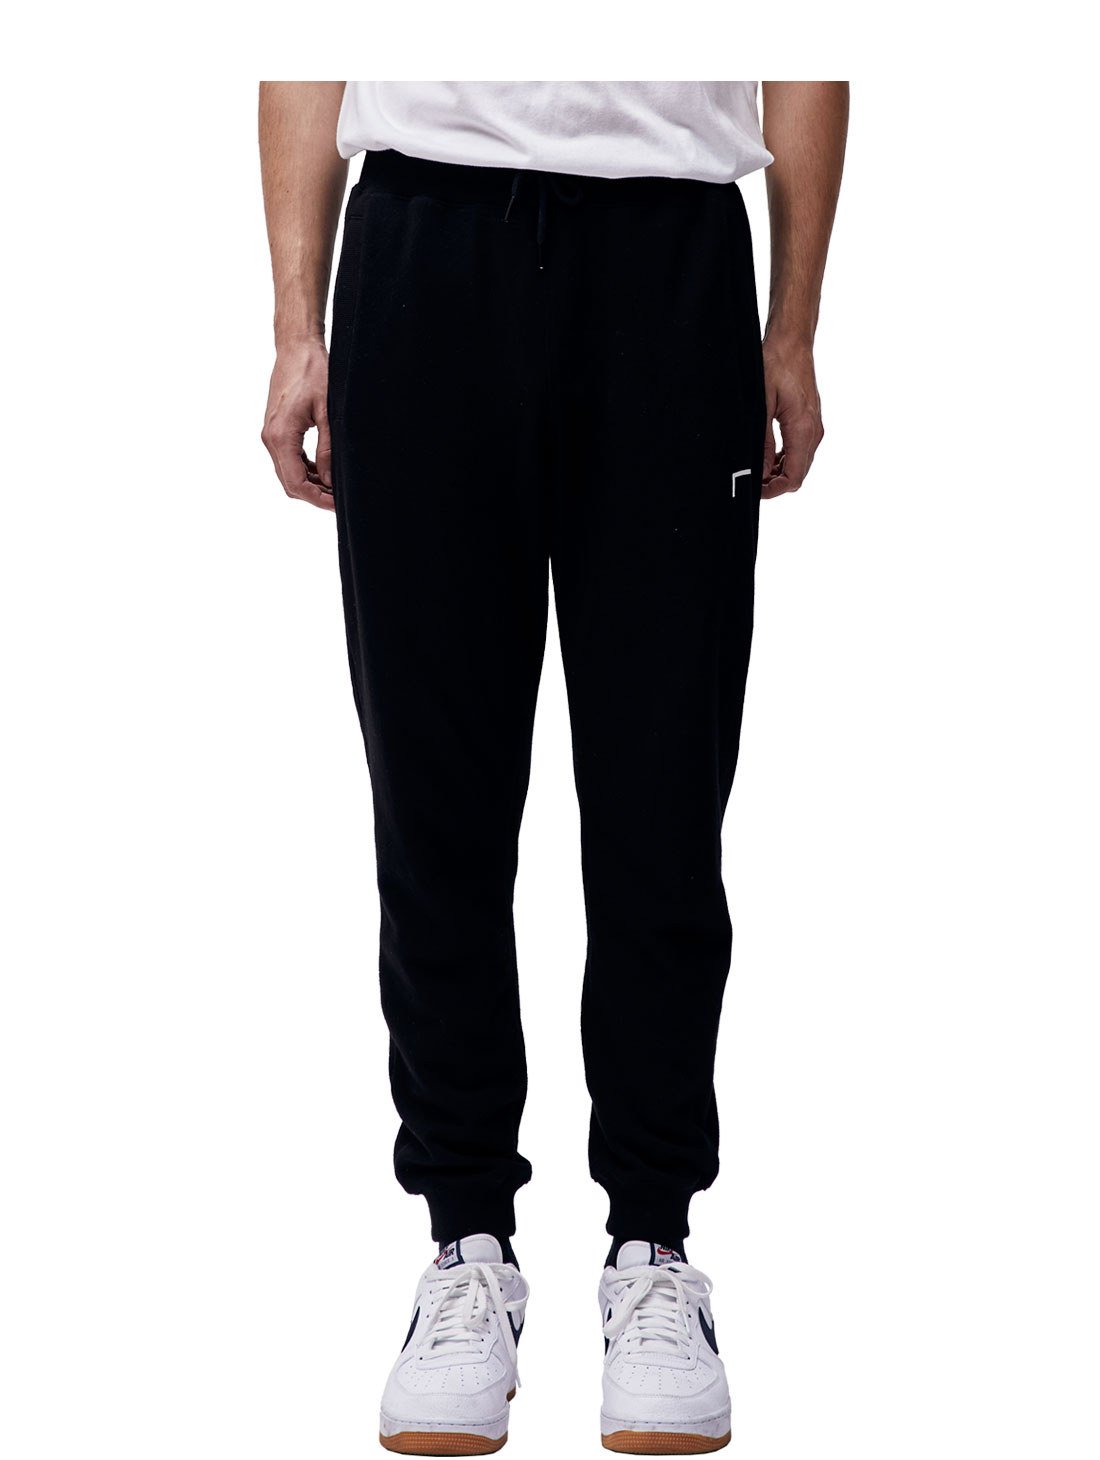 (Sold Out) GOAL KNIT JOGGER PANTS - BLACK